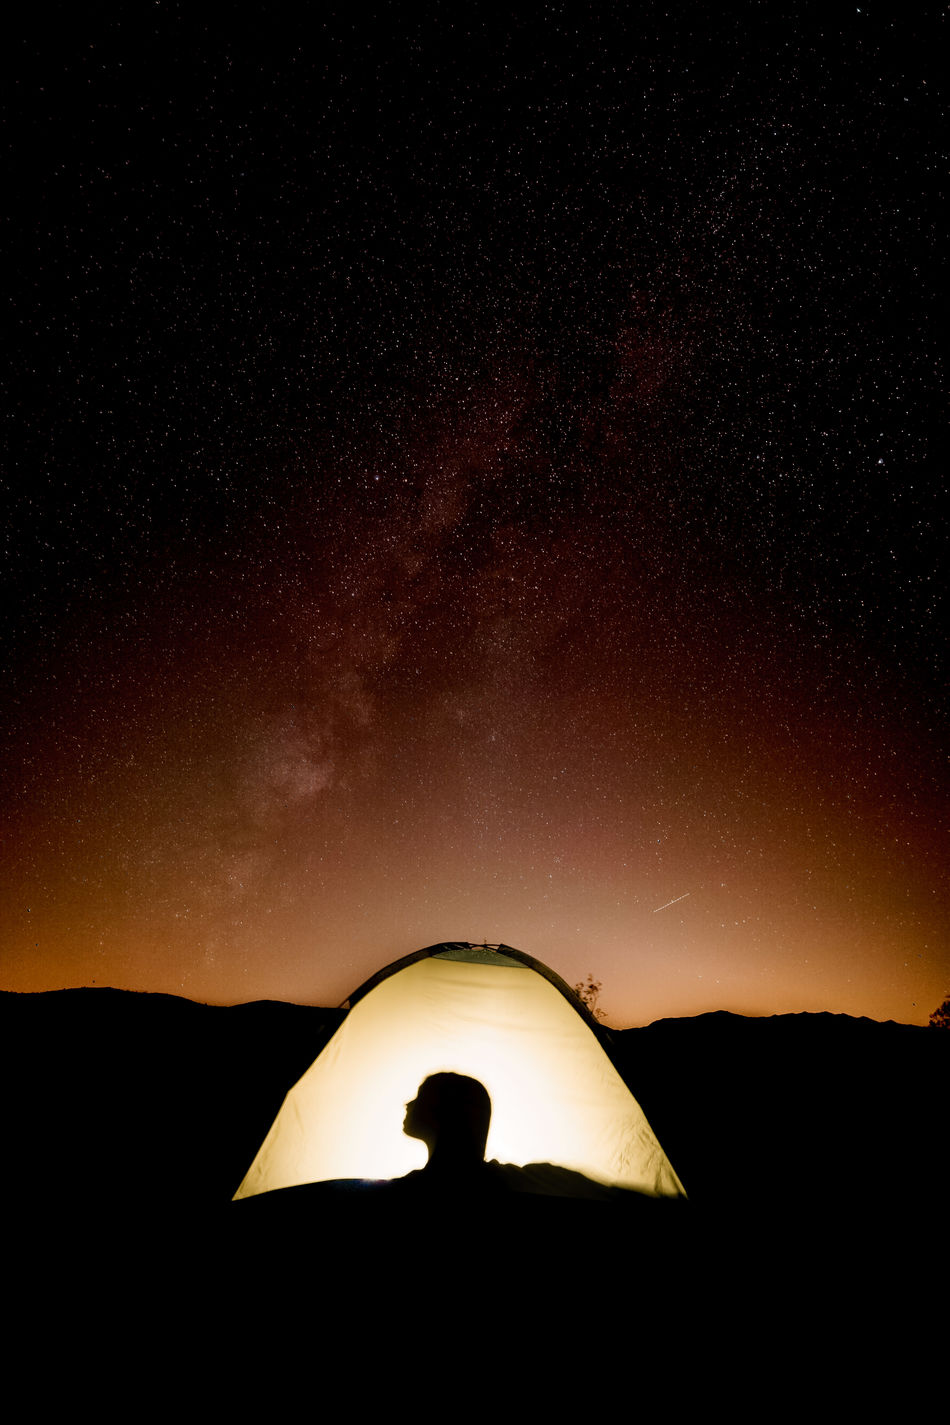 Astronomy Aurora Polaris Beauty In Nature Camping Constellation Galaxy Midnight Milky Way Nature Night Outdoors Scenics Silhouette Silhouette Sky Space Star - Space Sunset Tent